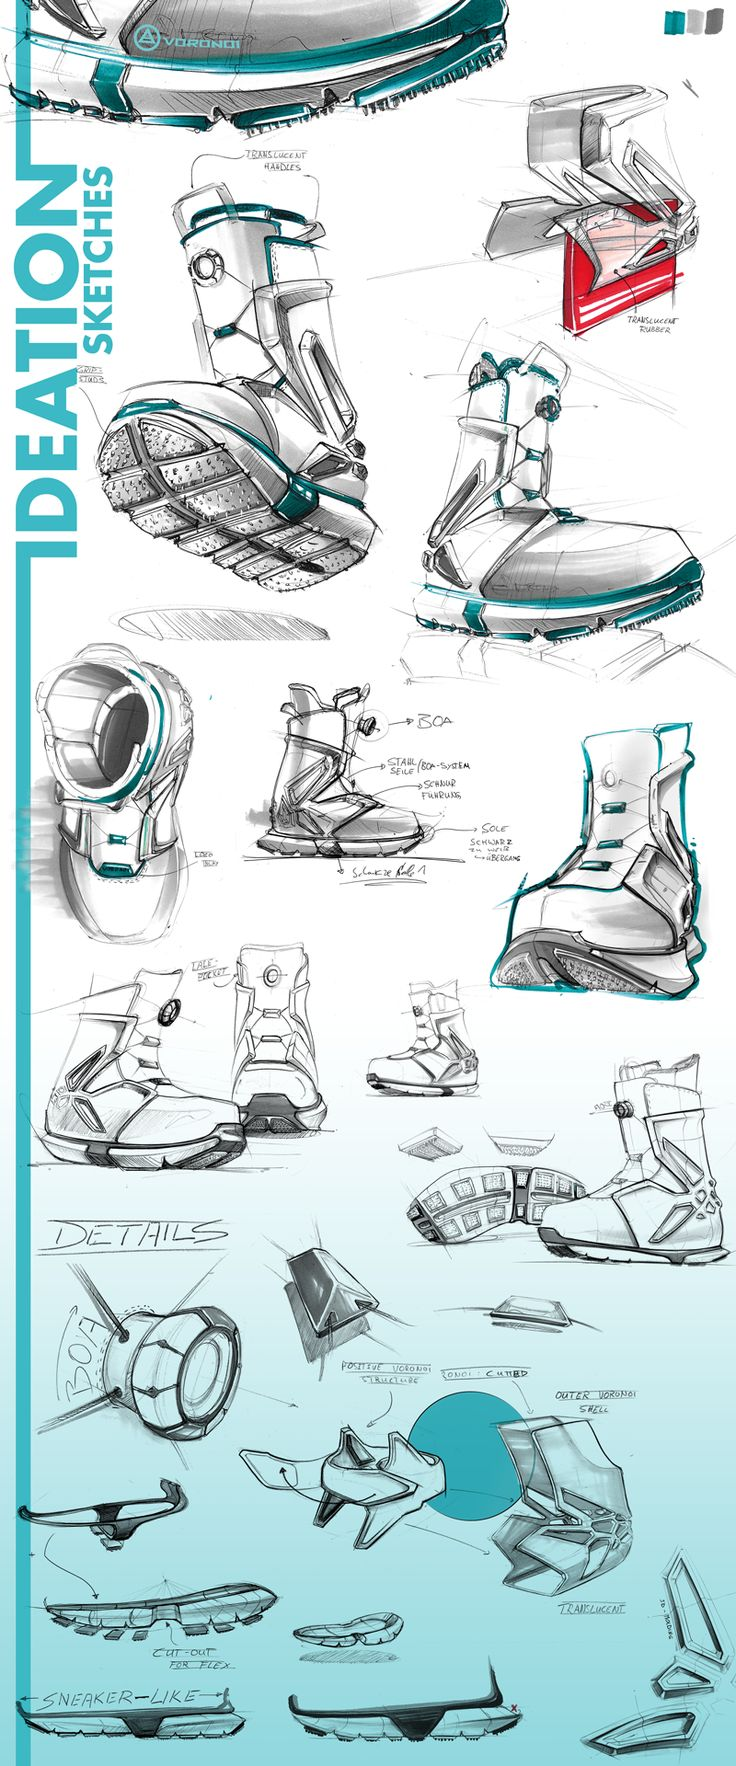 These drawings are stylized in a way that I find too dramatic for a real life shoe. If this were going to be styles as an accessory in a video game I would favor it more, but I cannot get of the odd shape. Aside from that the composition is spacious, semi-clean and fresh. I like their choice of incorporating the text with that line.